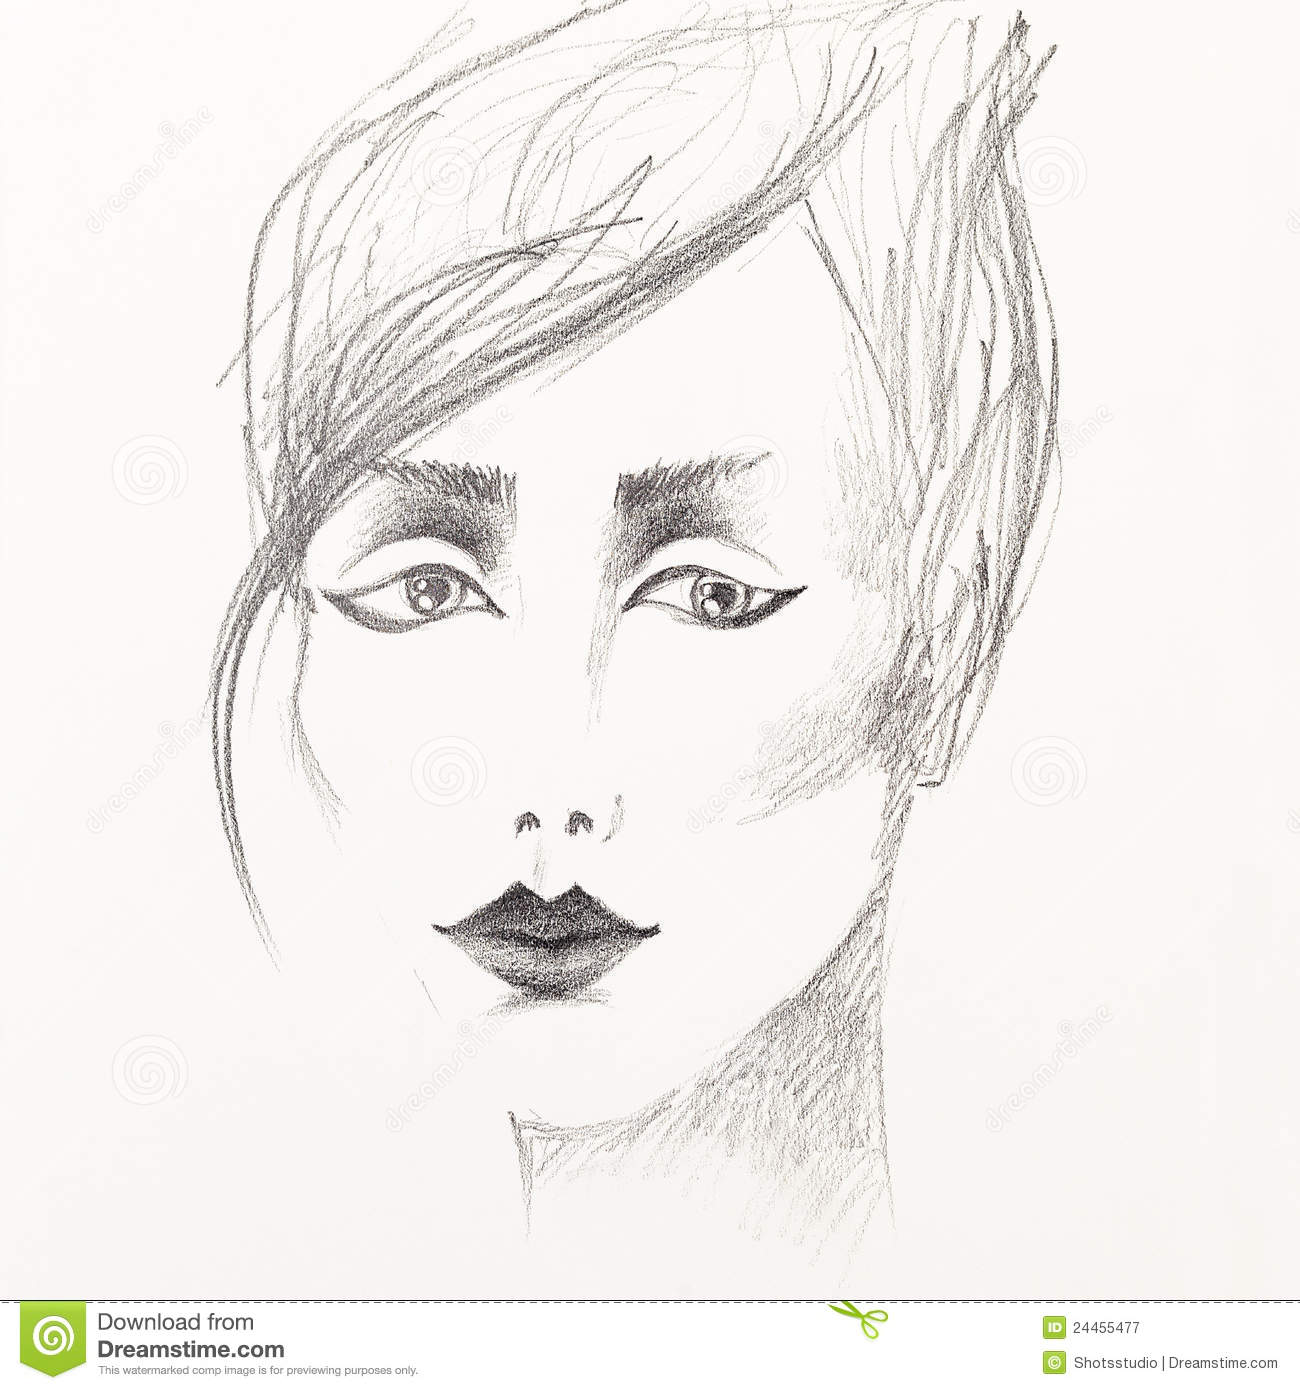 Pencil Sketch Free Download